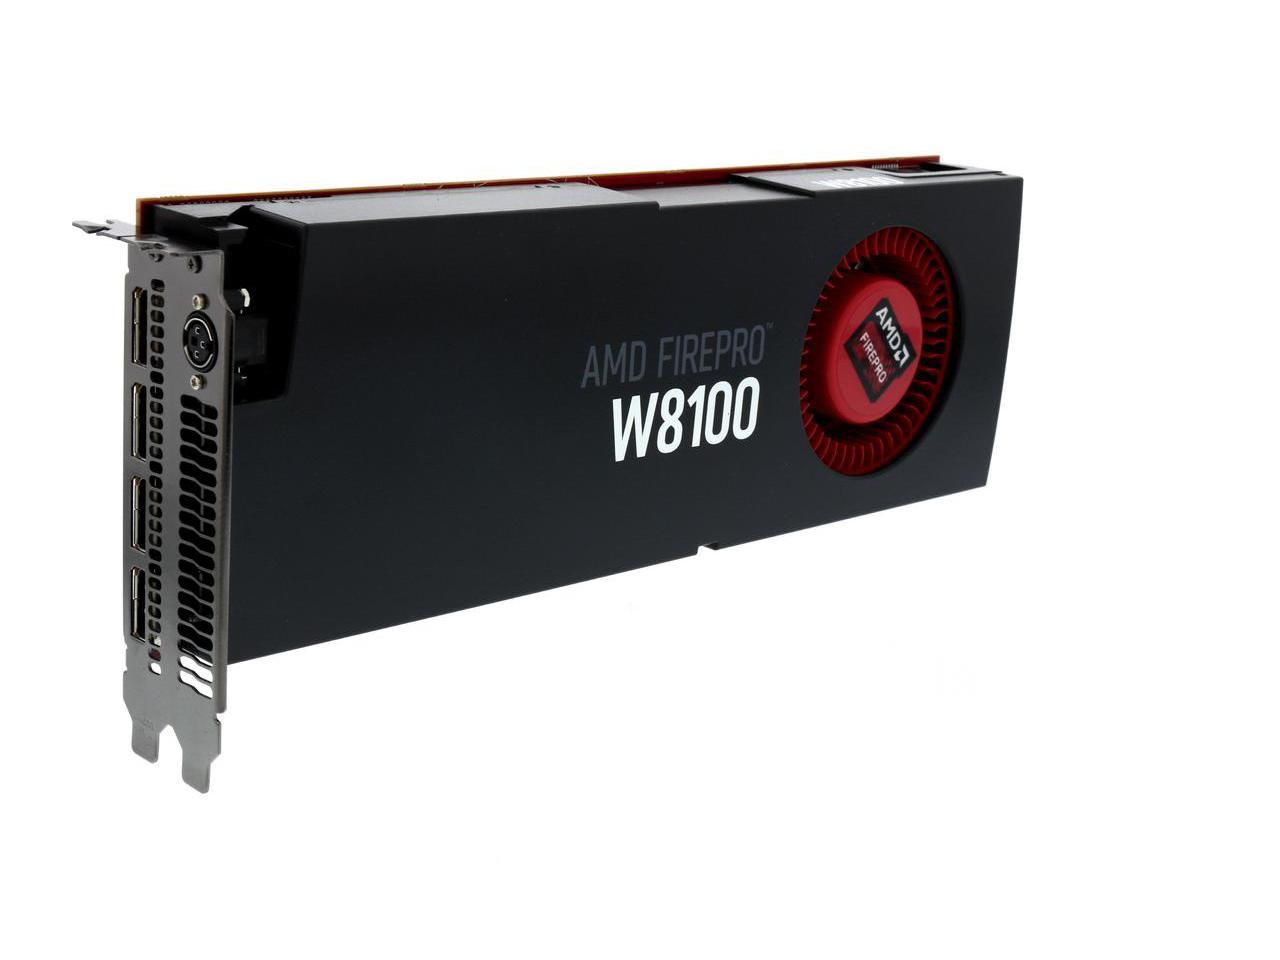 AMD FirePro W8100 100-505976 8GB 512-bit GDDR5 PCI Express 3 0 x16  CrossFire Supported Workstation Video Card